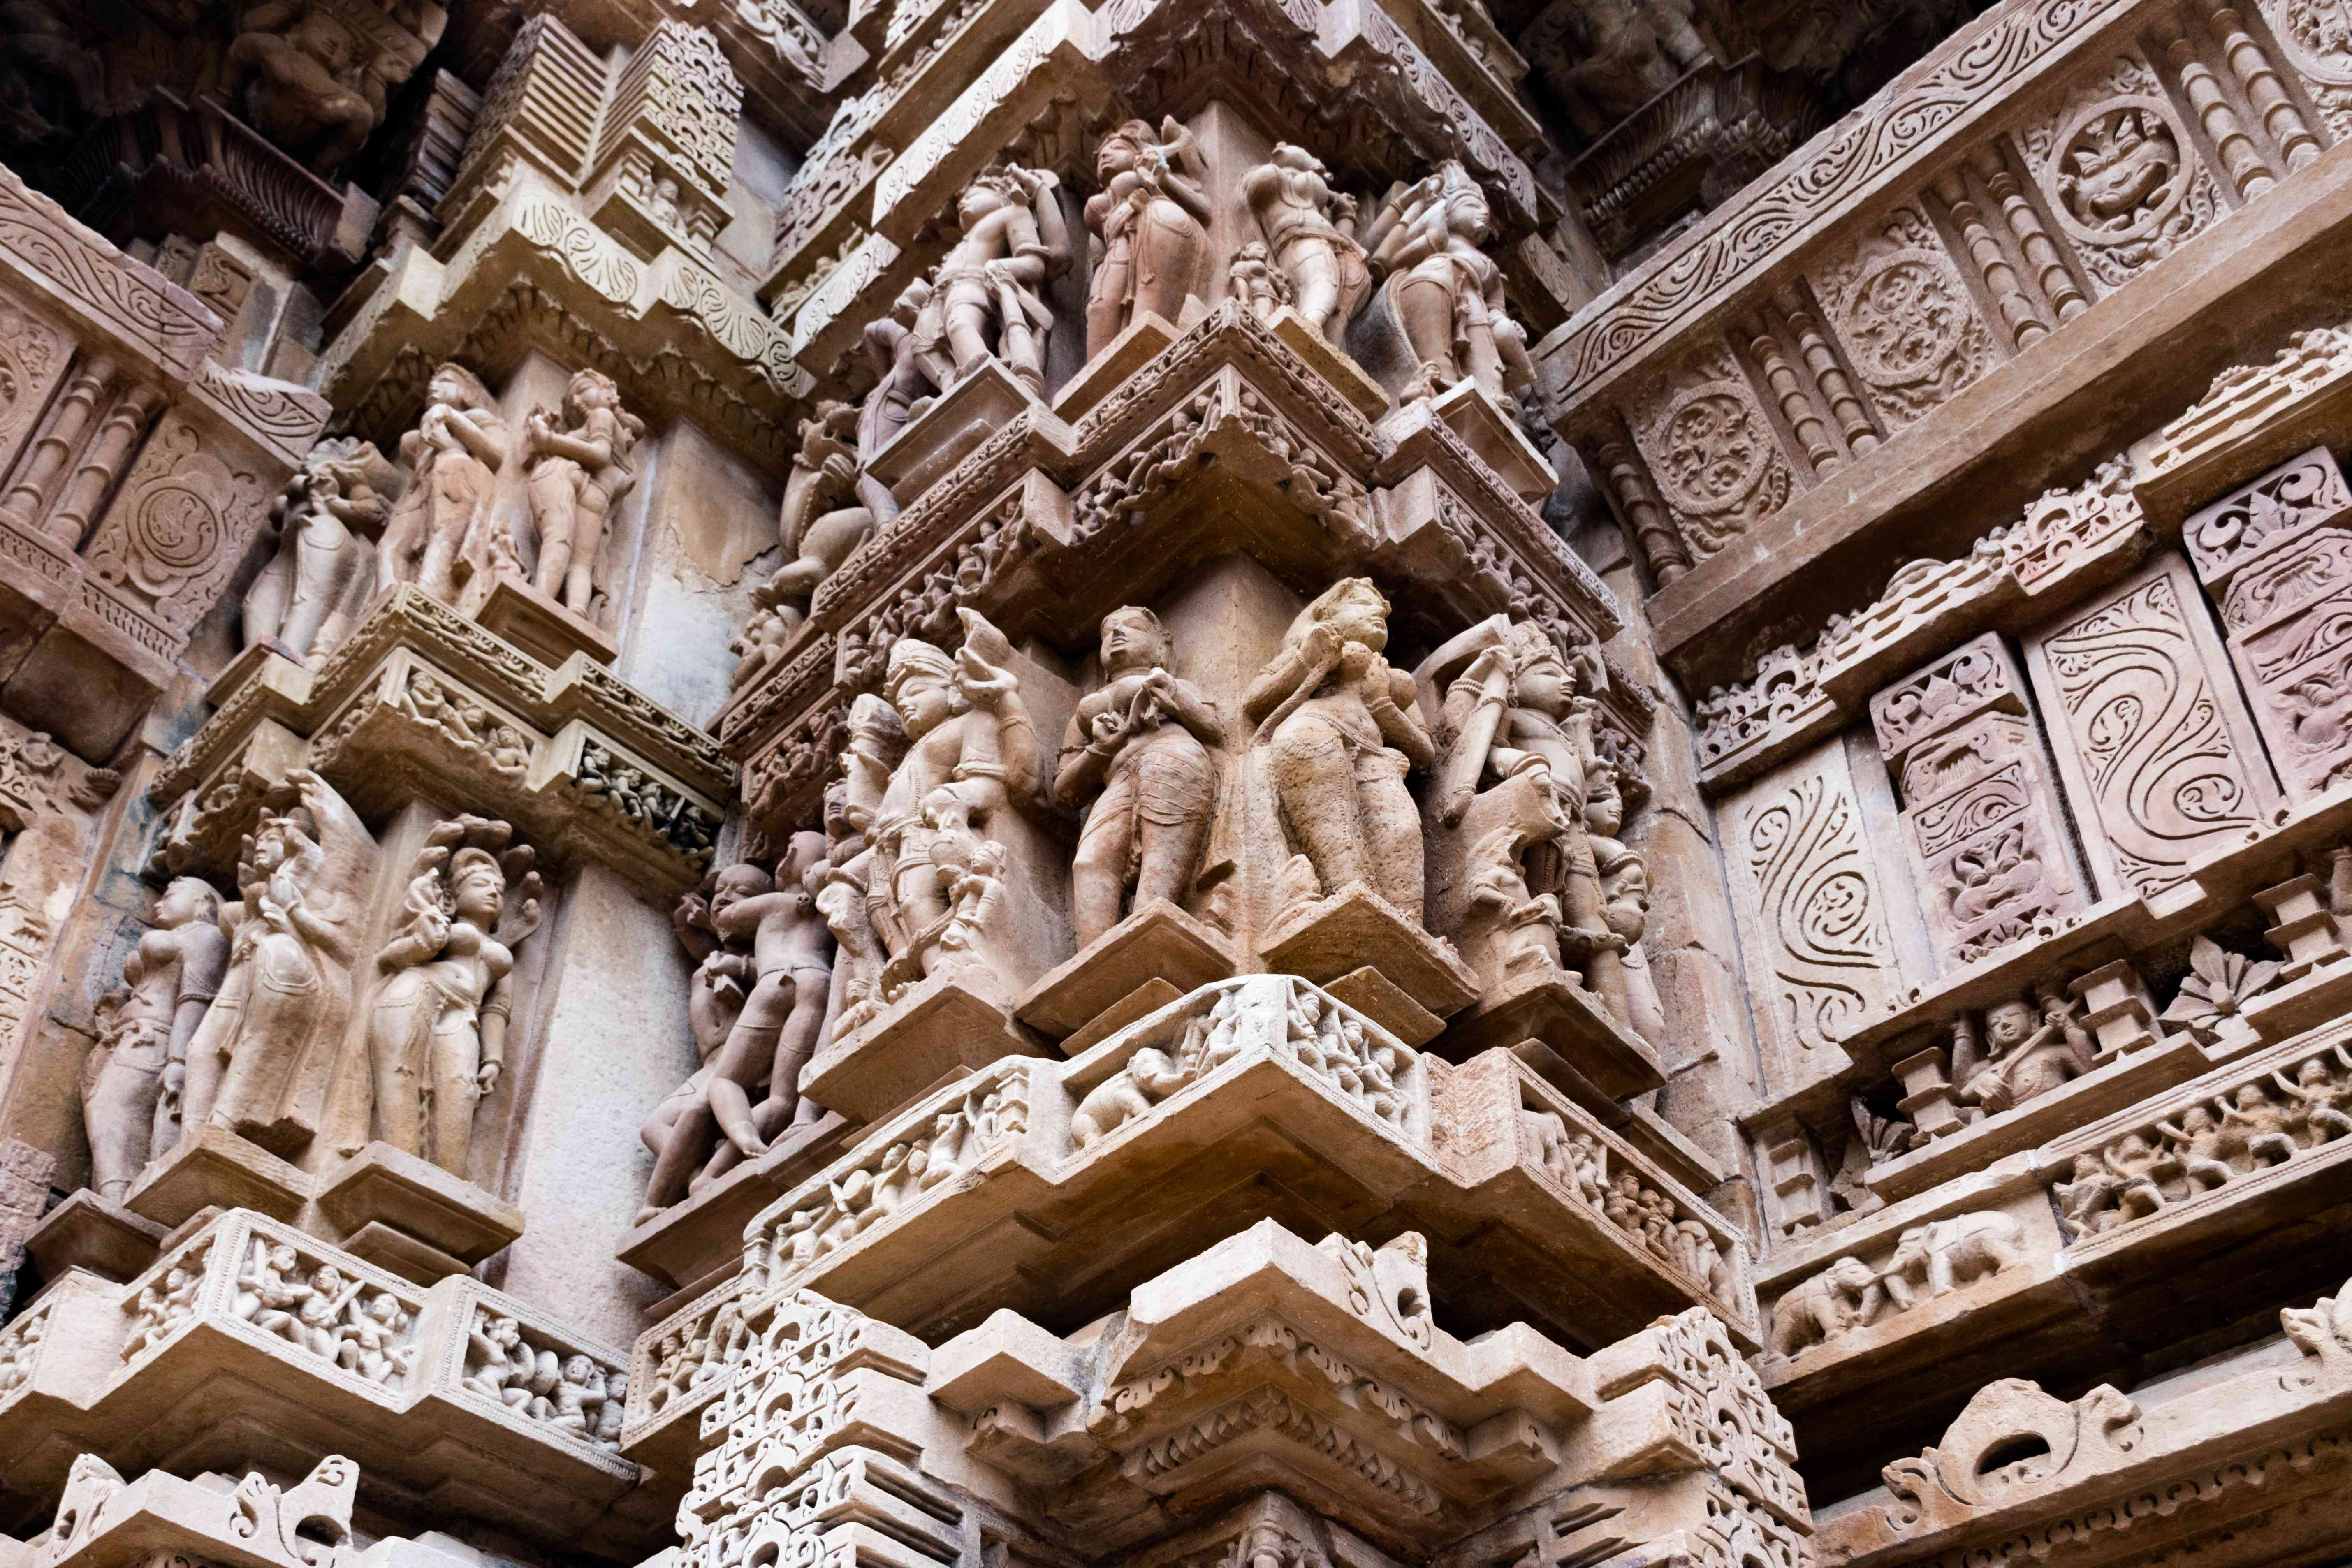 Intricate carvings inside the Khajuraho Temples